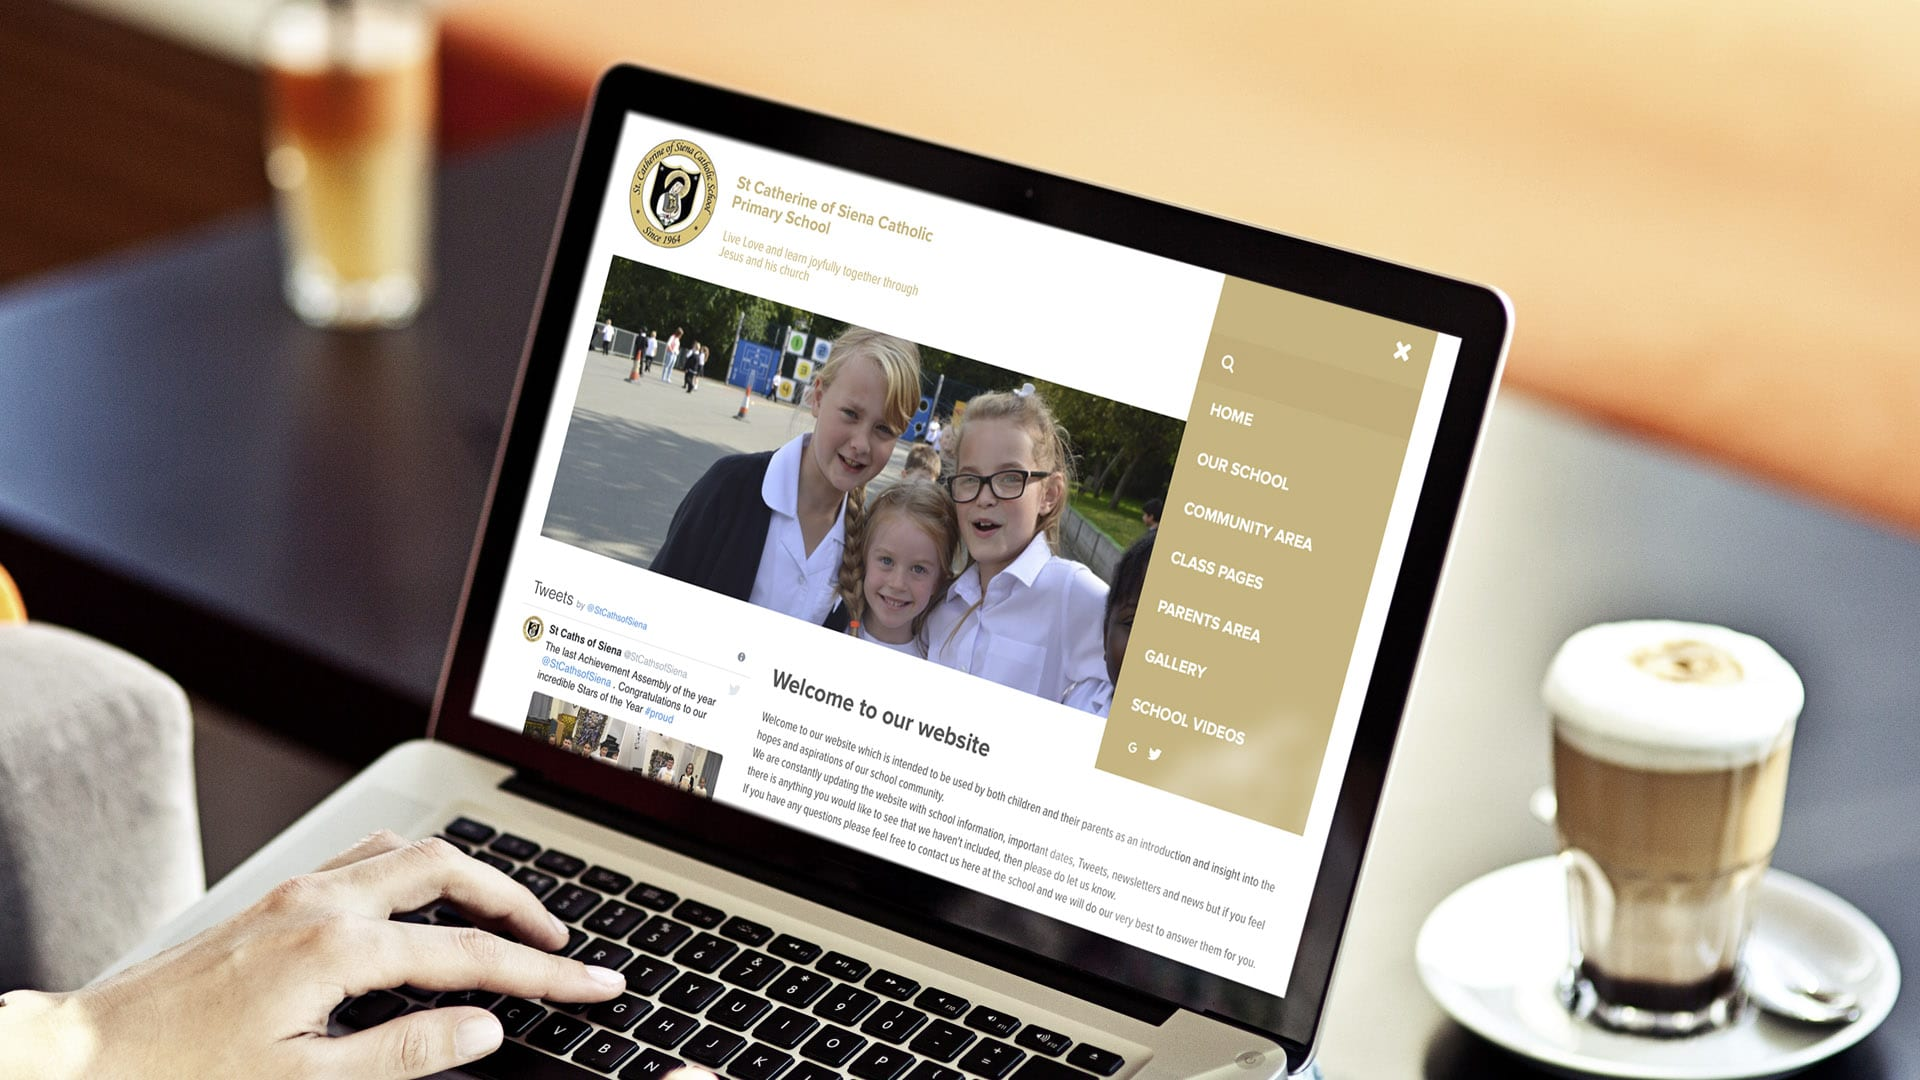 New school website design for St Catherine of Siena Catholic Primary School